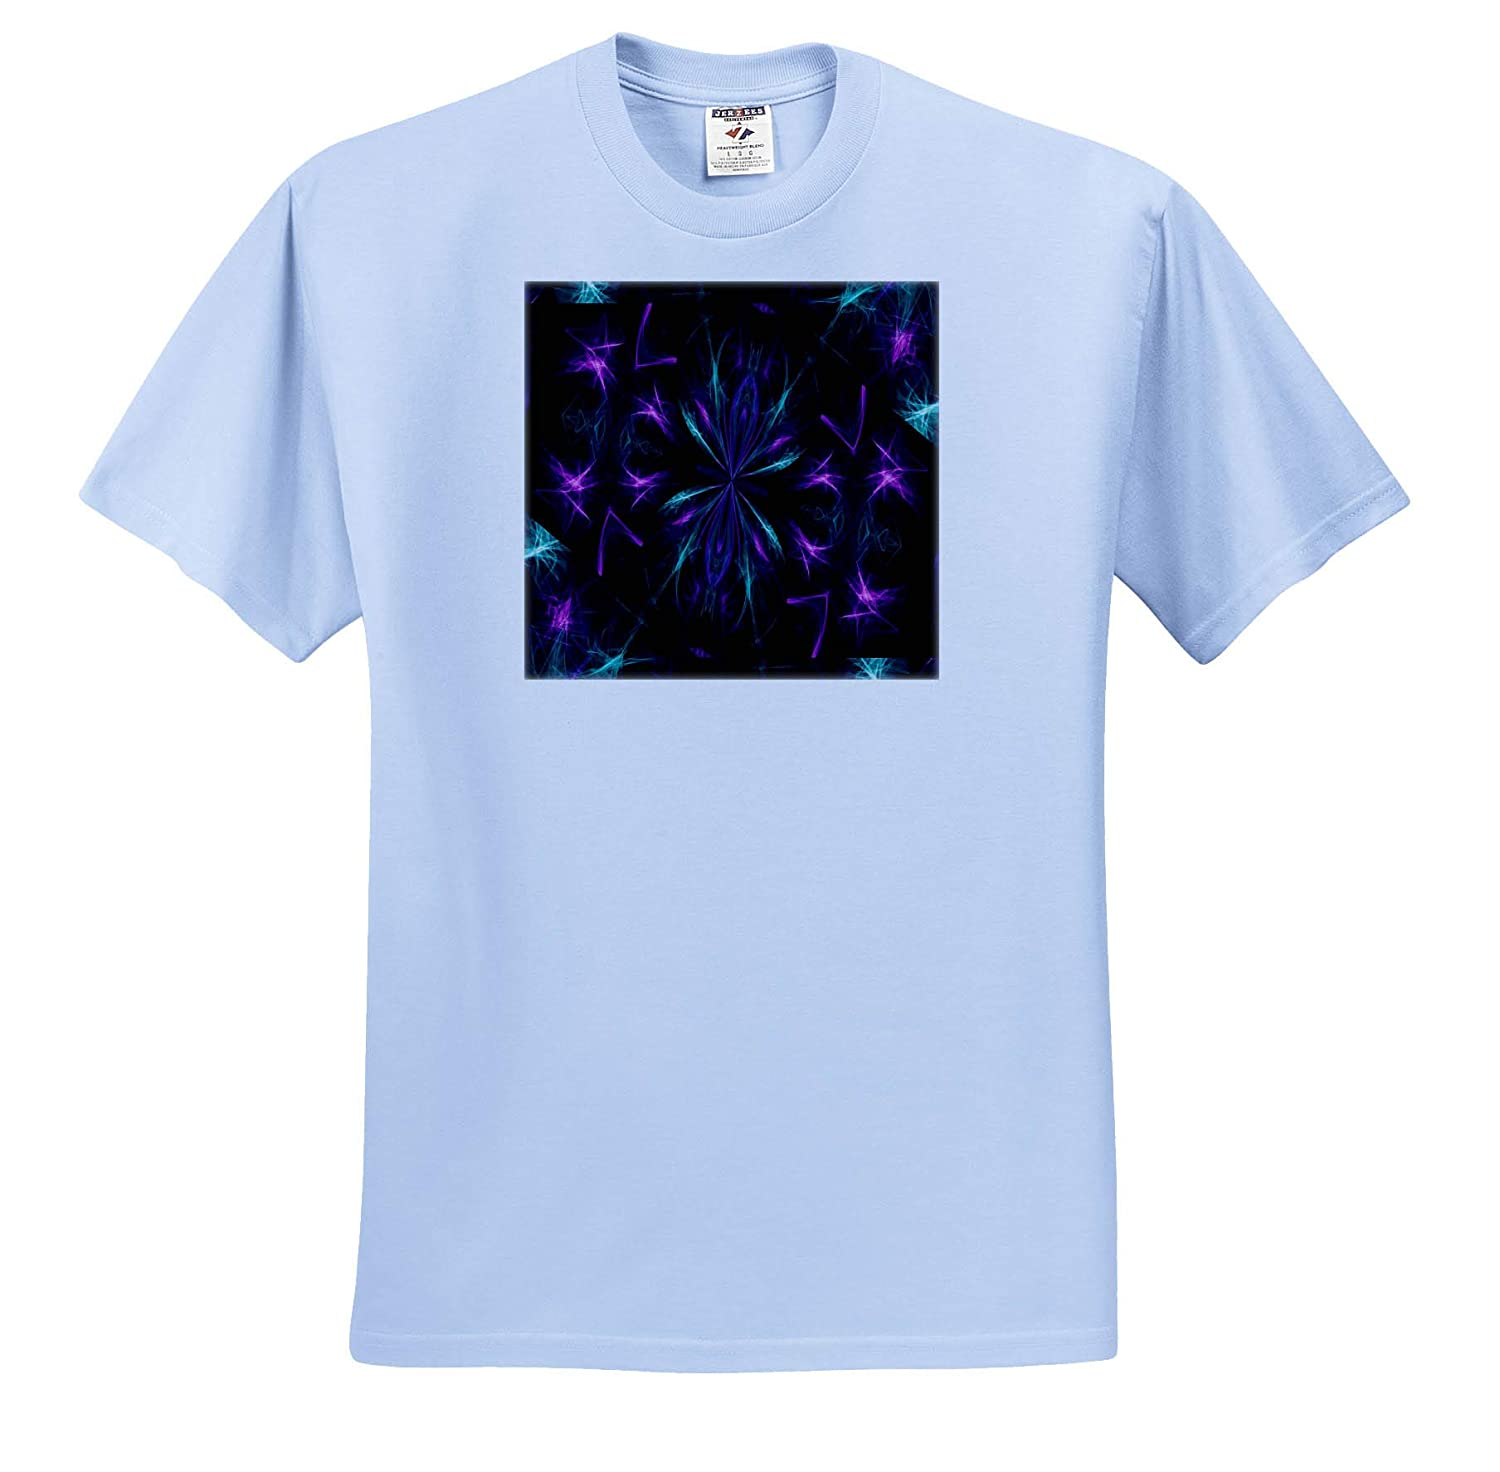 Adult T-Shirt XL Purple and Teal Dreamscapes Design 4 Design 3dRose Dreamscapes by Leslie ts/_314284